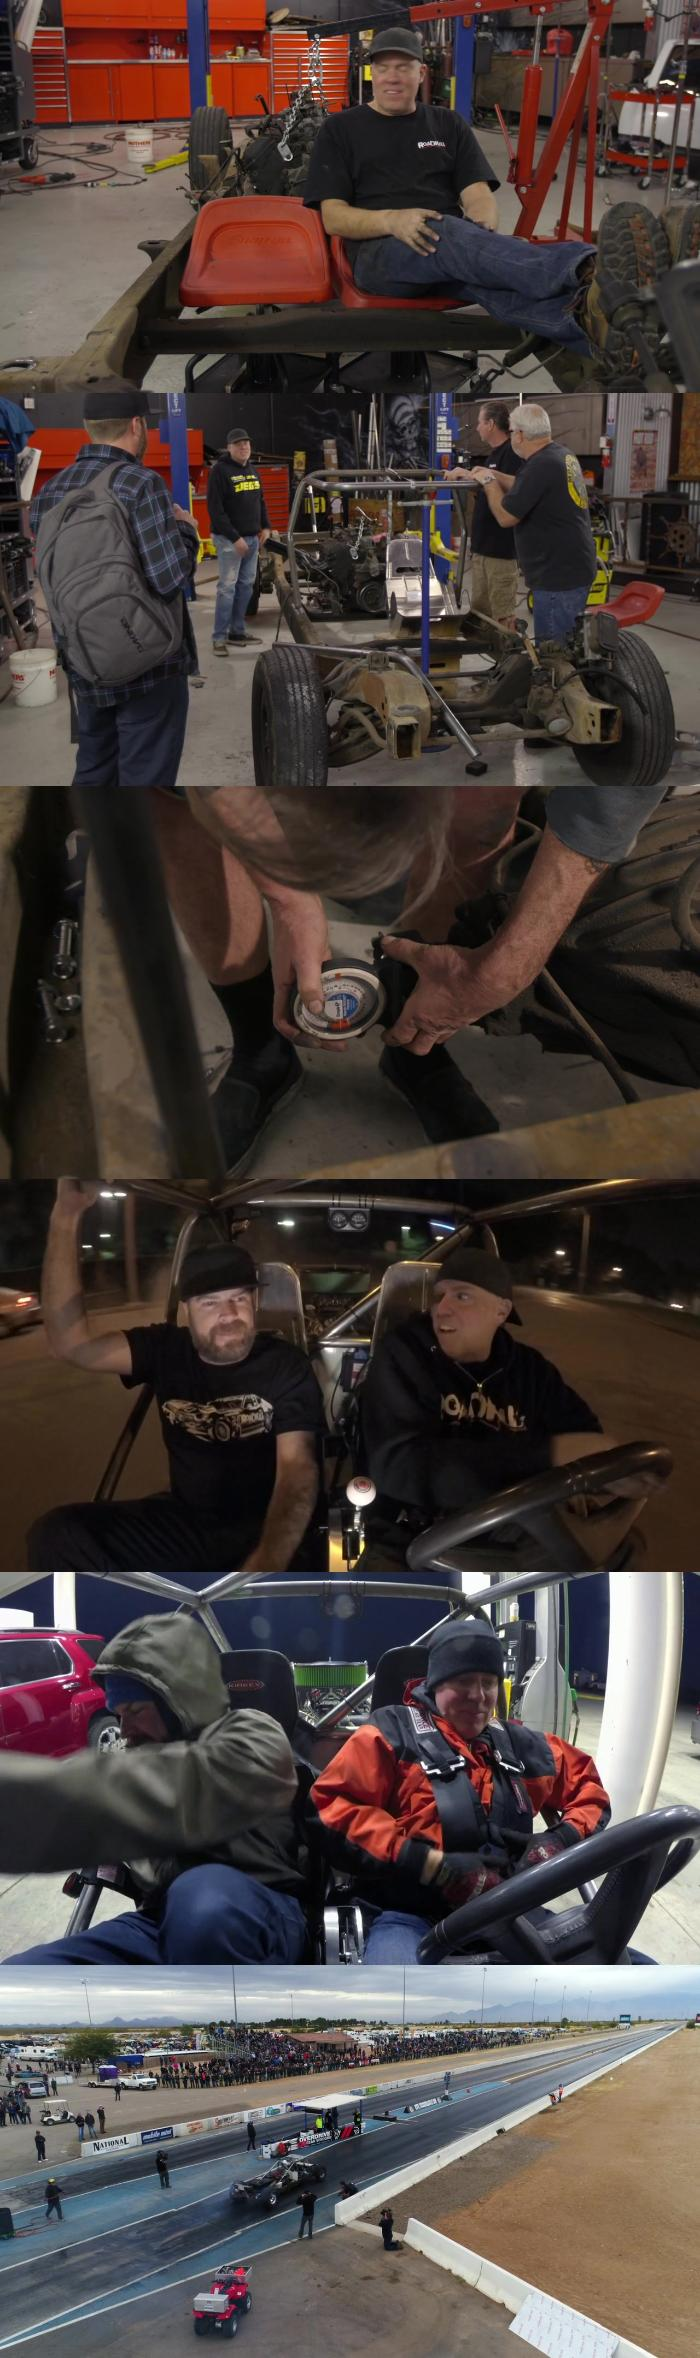 roadkill s07e03 The ugly truckling dragster 720p web h264-robots